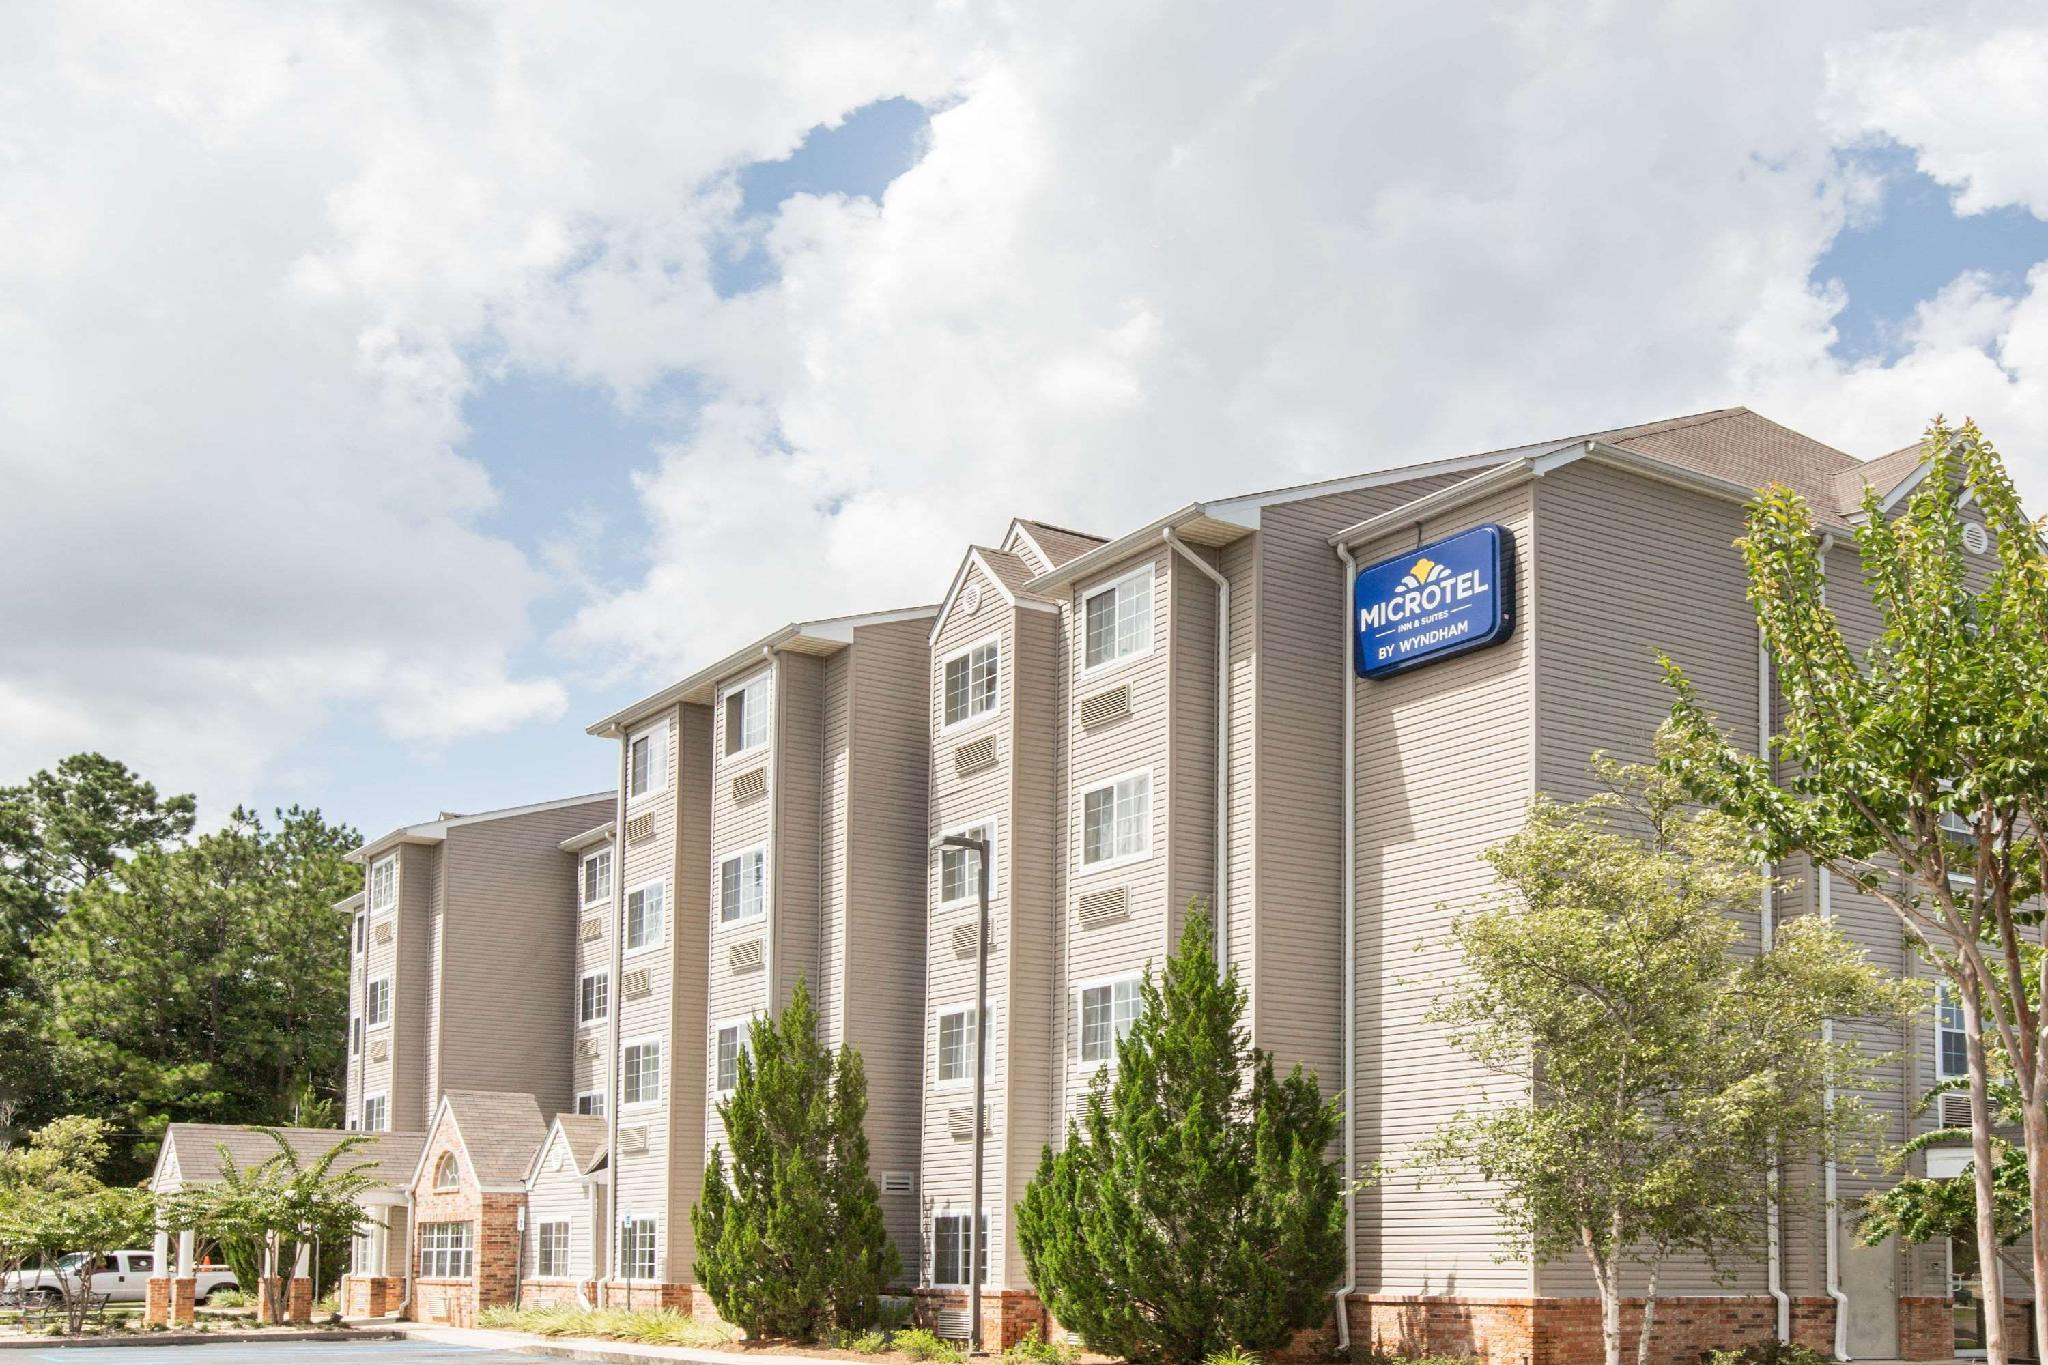 Microtel Inn & Suites By Wyndham Saraland North Mobile